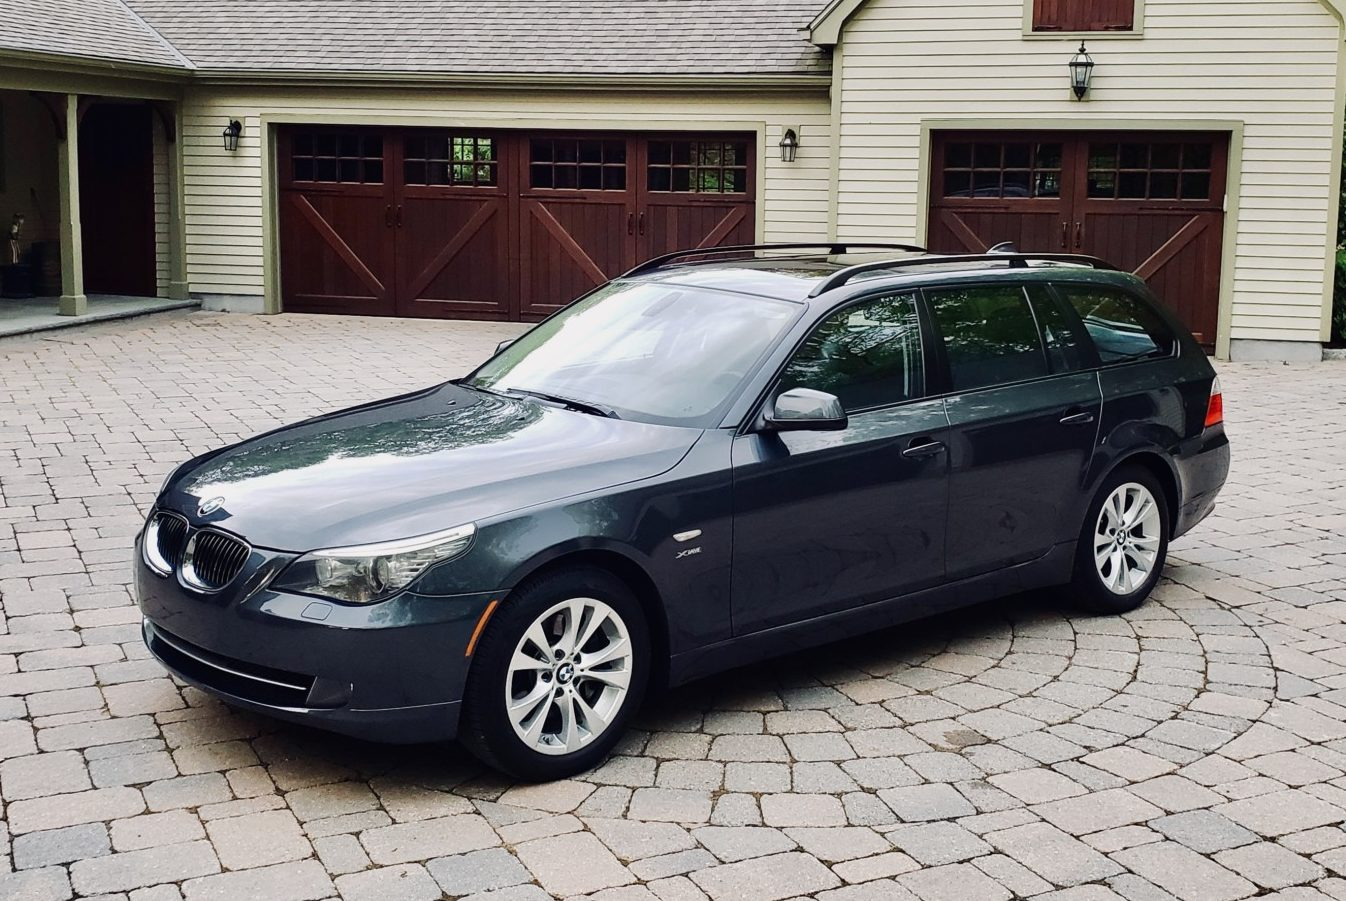 hight resolution of 2010 bmw 535i xdrive sports wagon for sale on bat auctions closed on may 23 2019 lot 19 119 bring a trailer